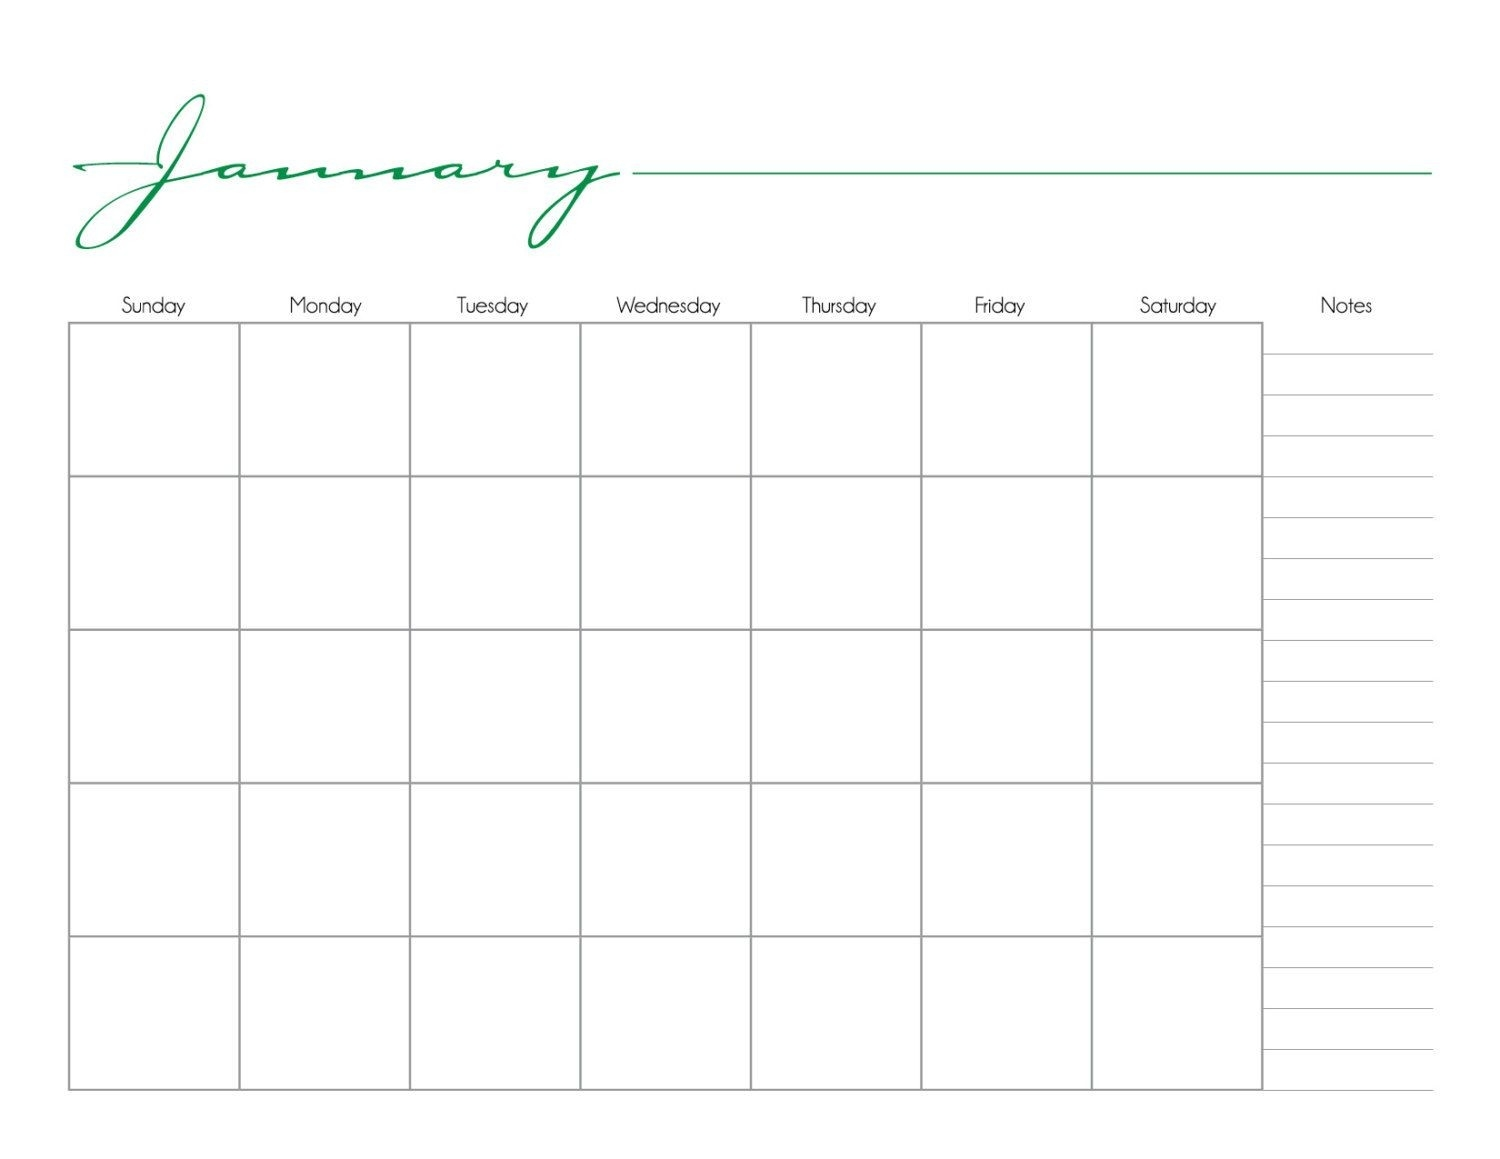 Whimsical Printable Monthly Calendar No Date / By-Printable Monthly Calendar Sunday To Saturday No Dates